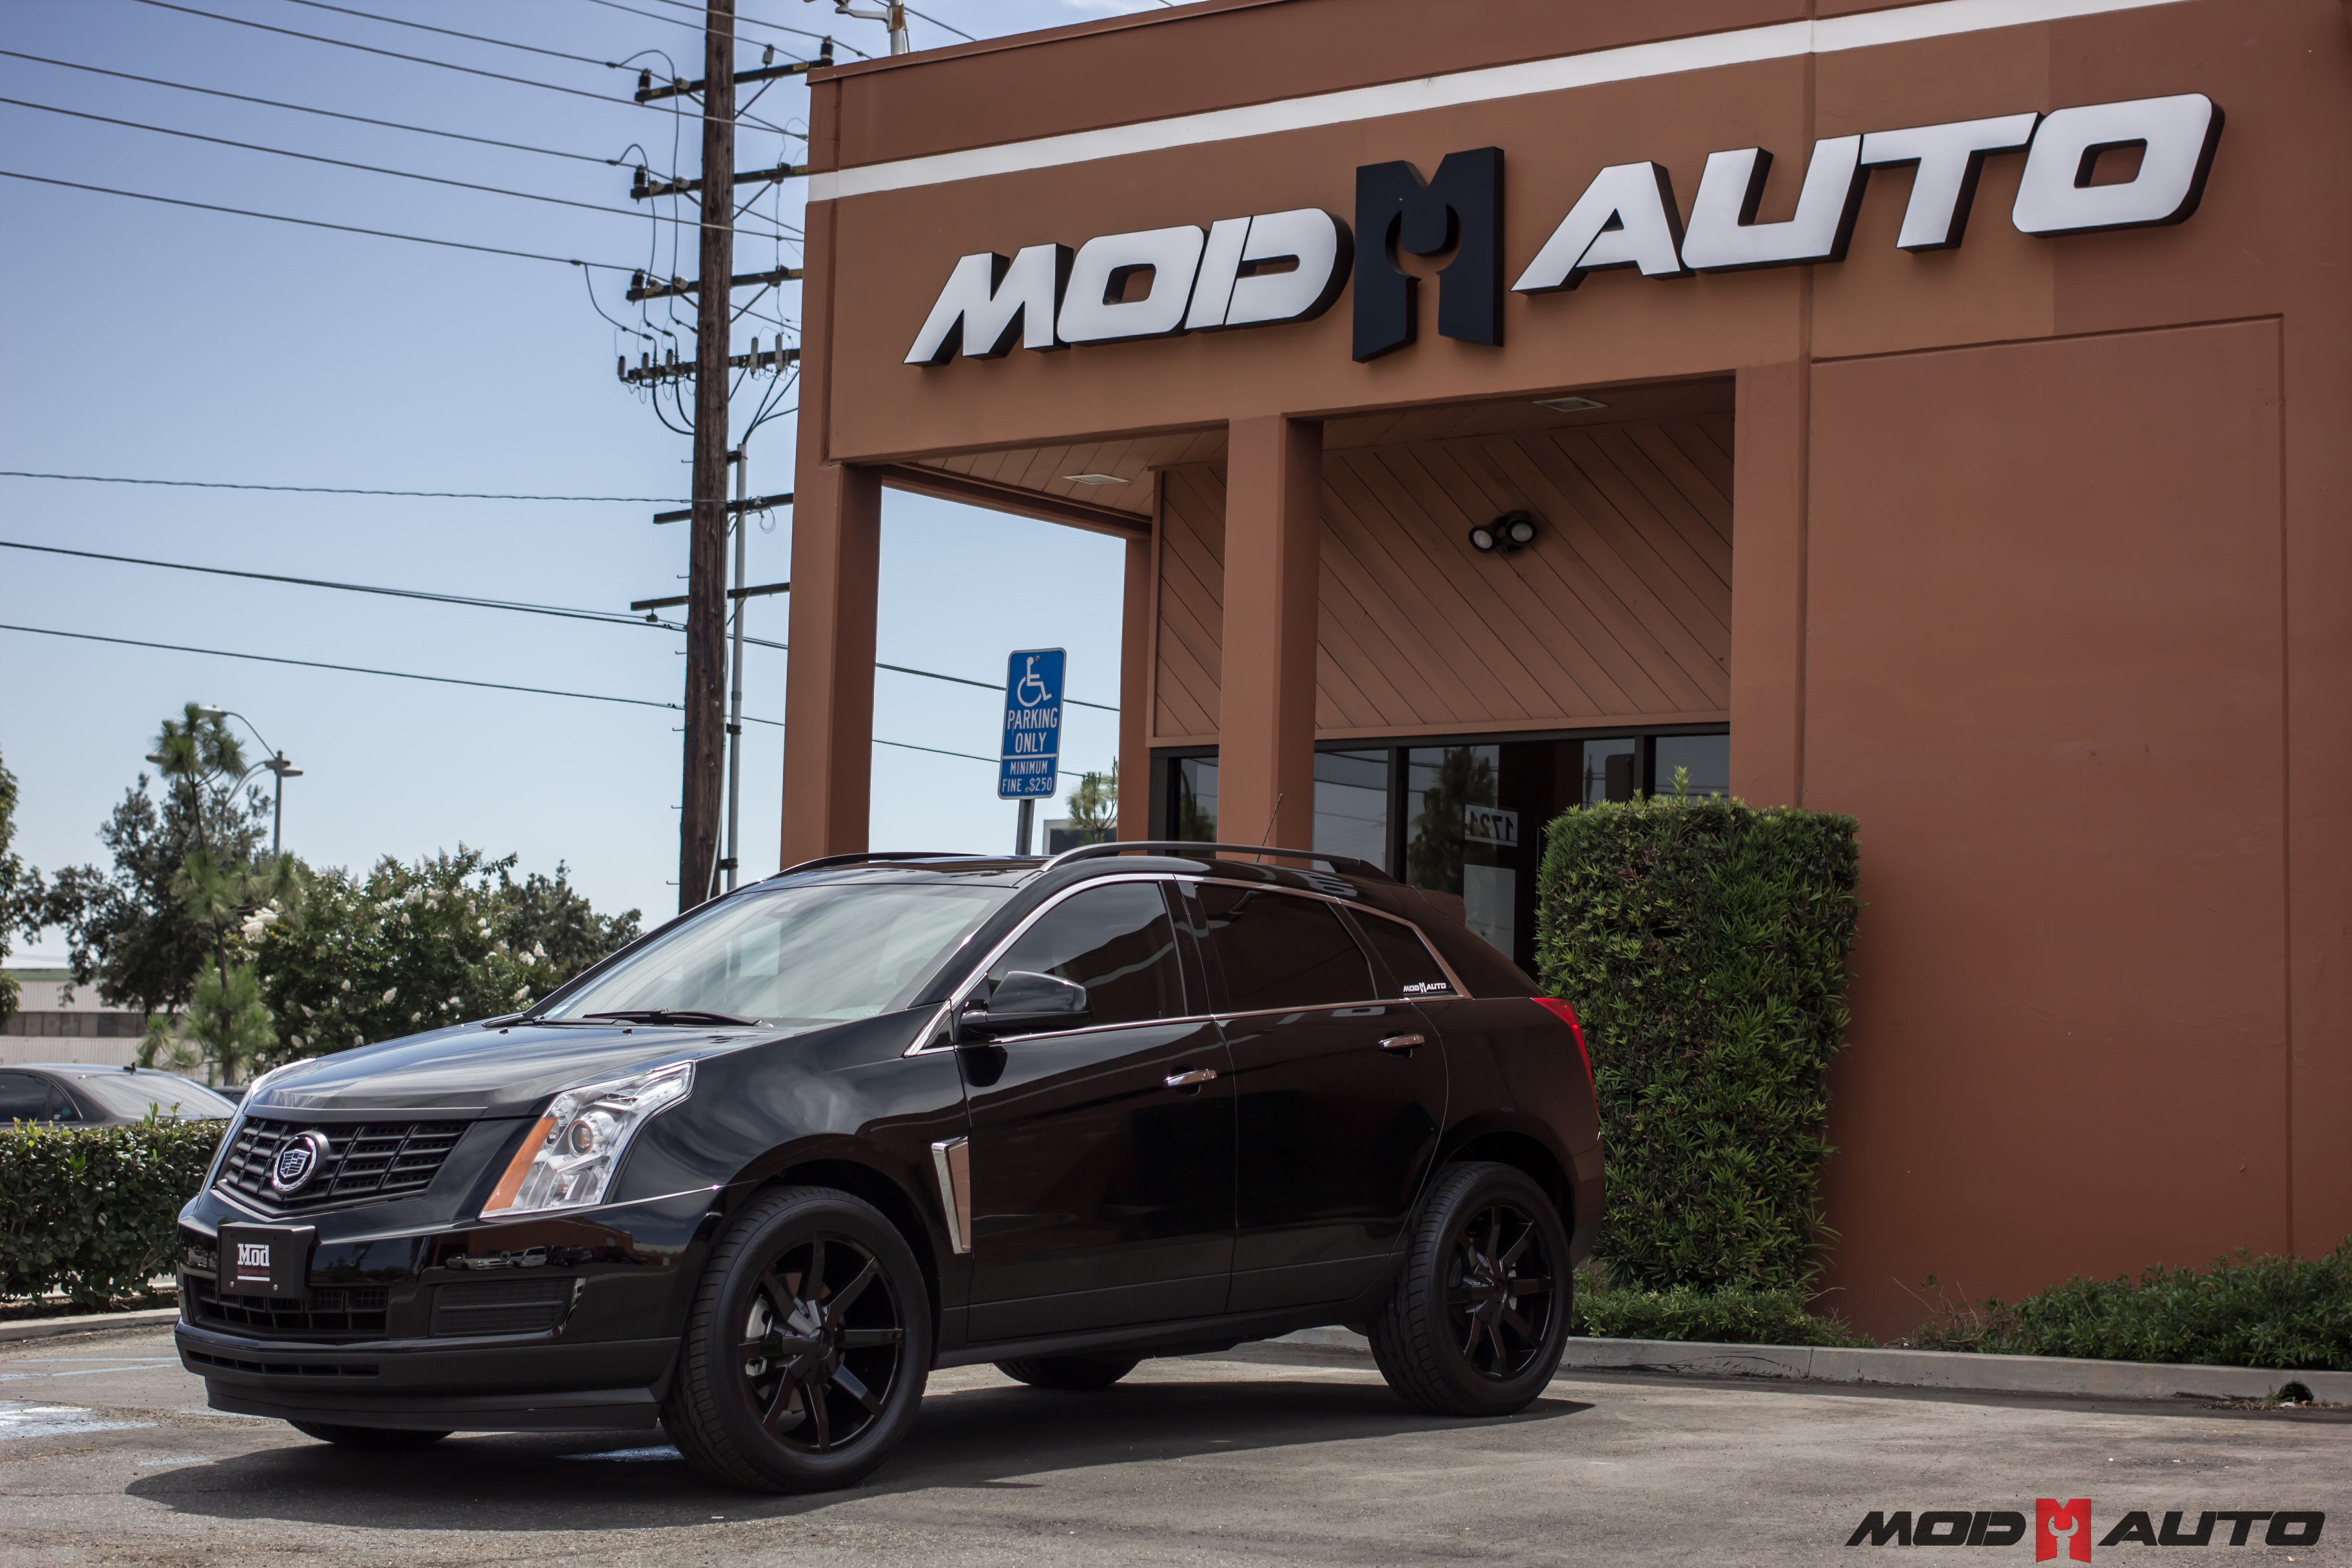 srx vsport how escalade v revs sound supercharged car renderings rendering does front daily liter cadillac speculative com